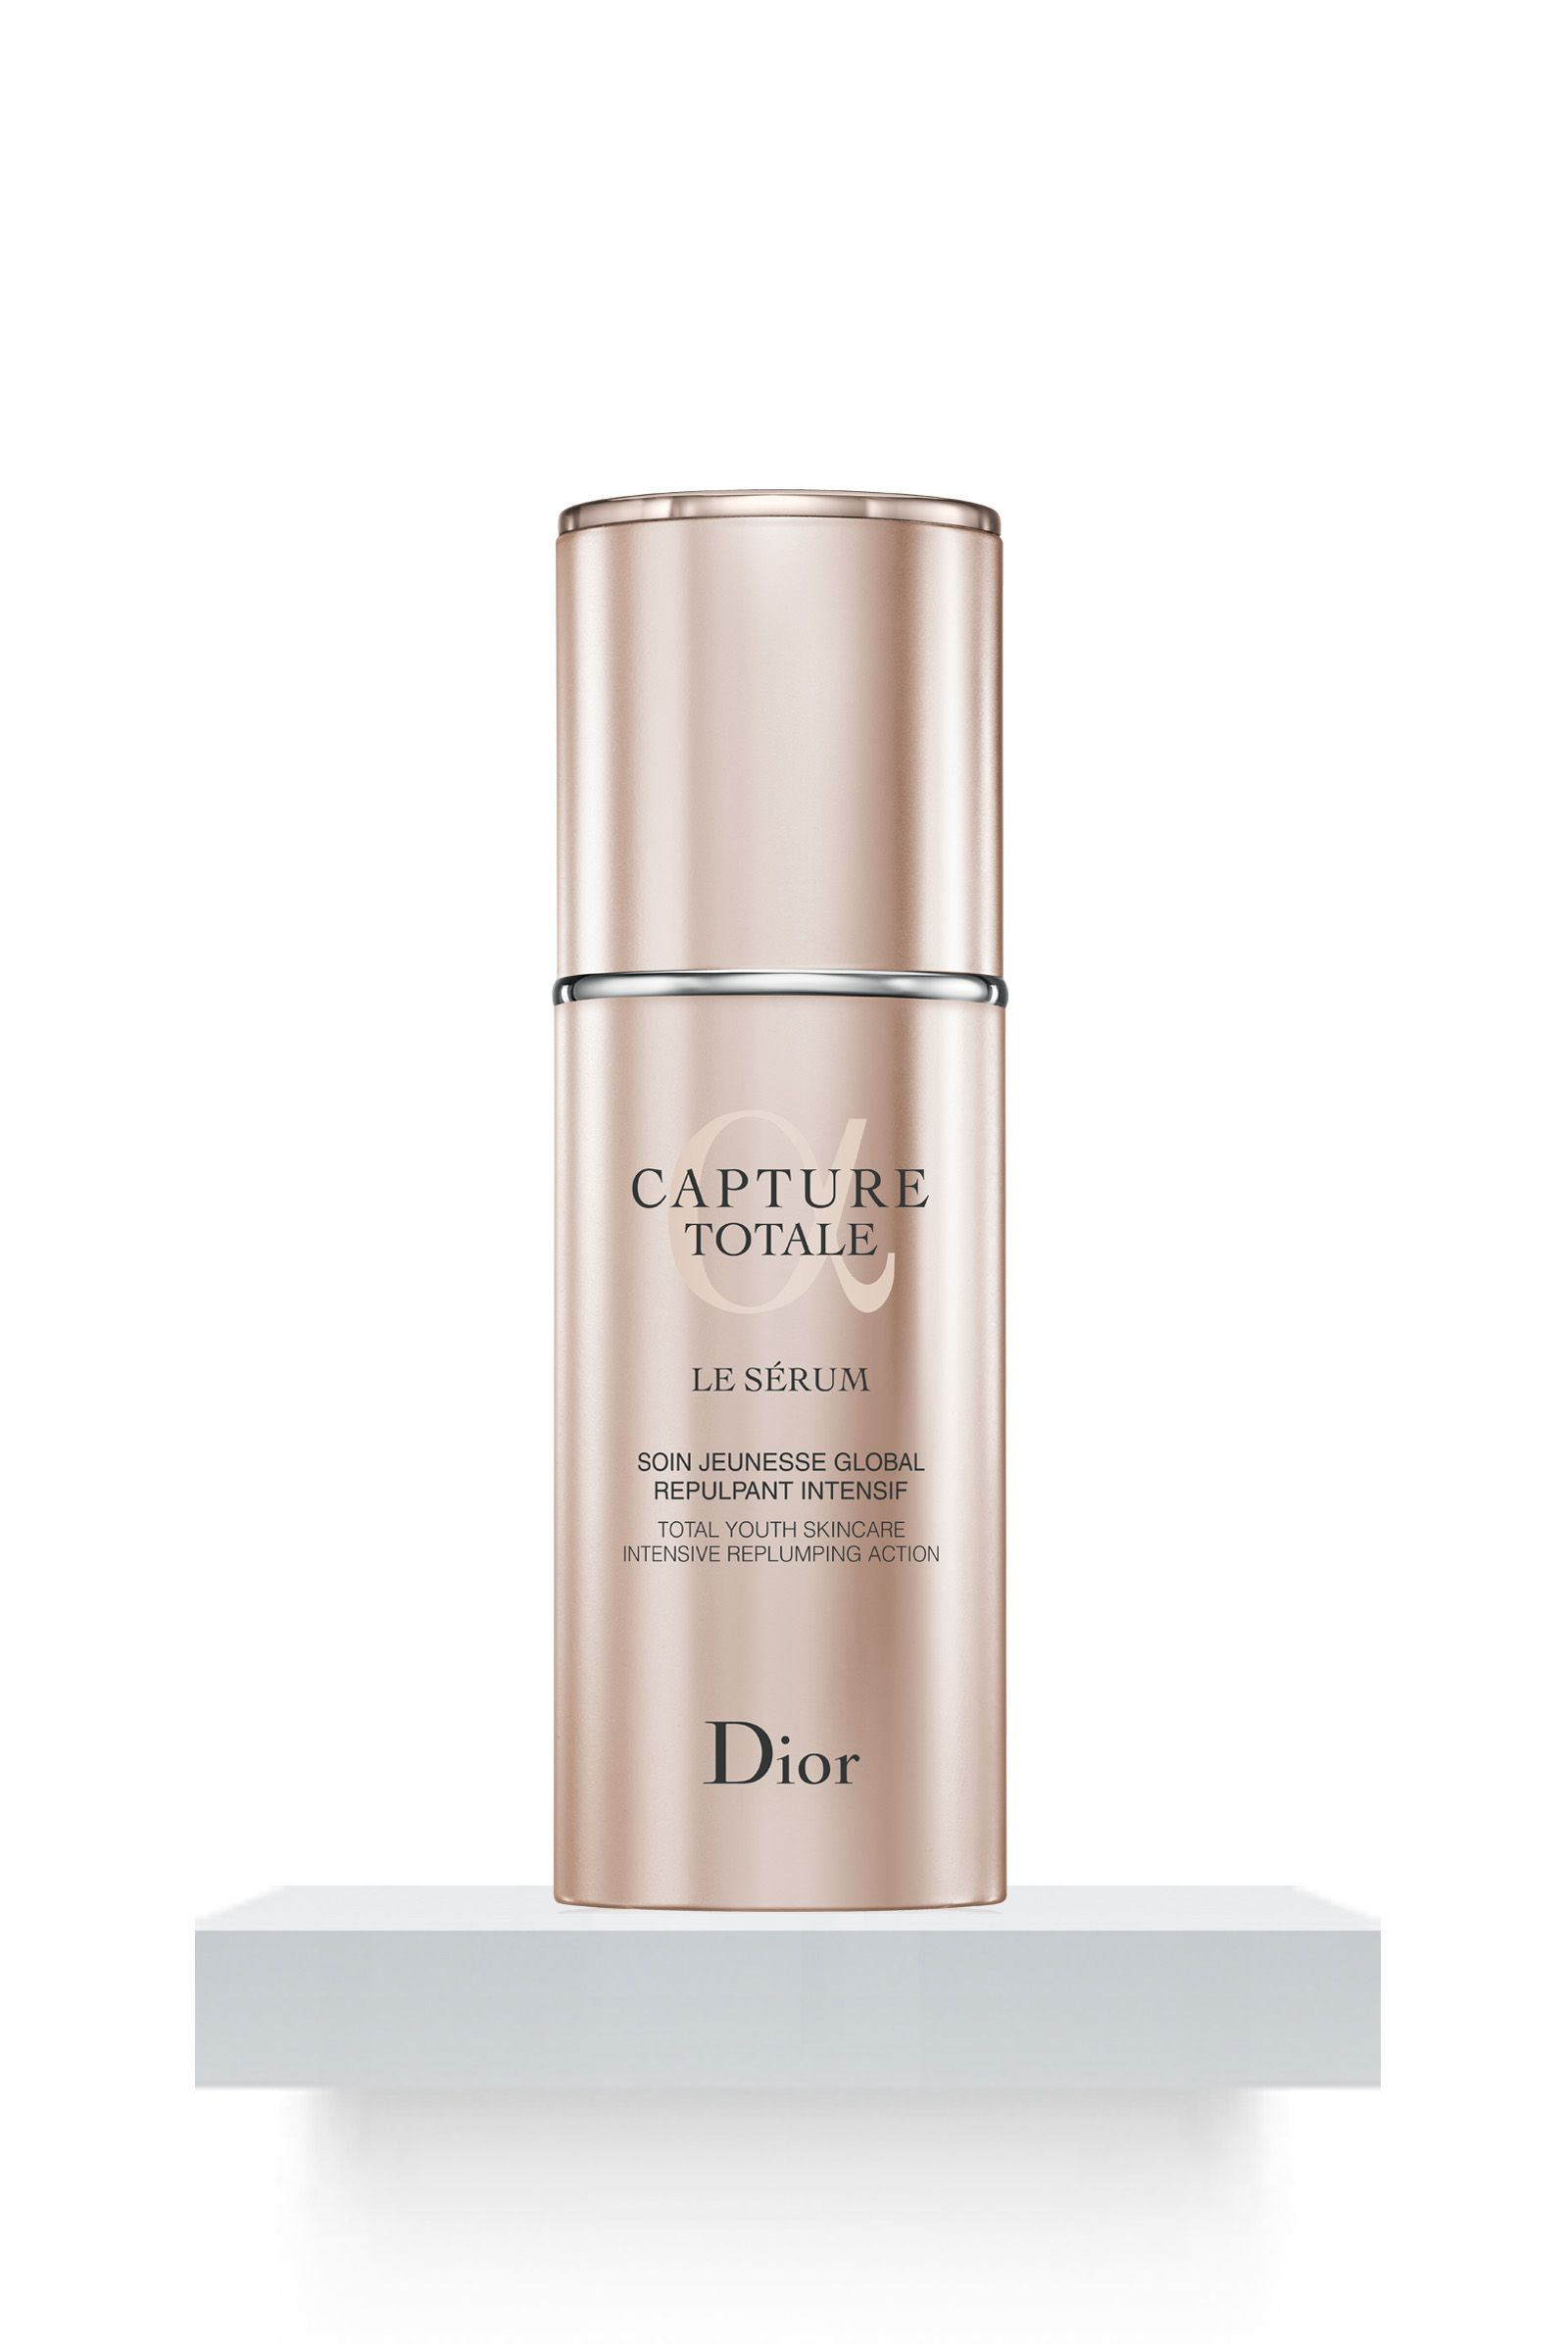 dior dior capture totale the new serum 50ml refill gay times uk. Black Bedroom Furniture Sets. Home Design Ideas